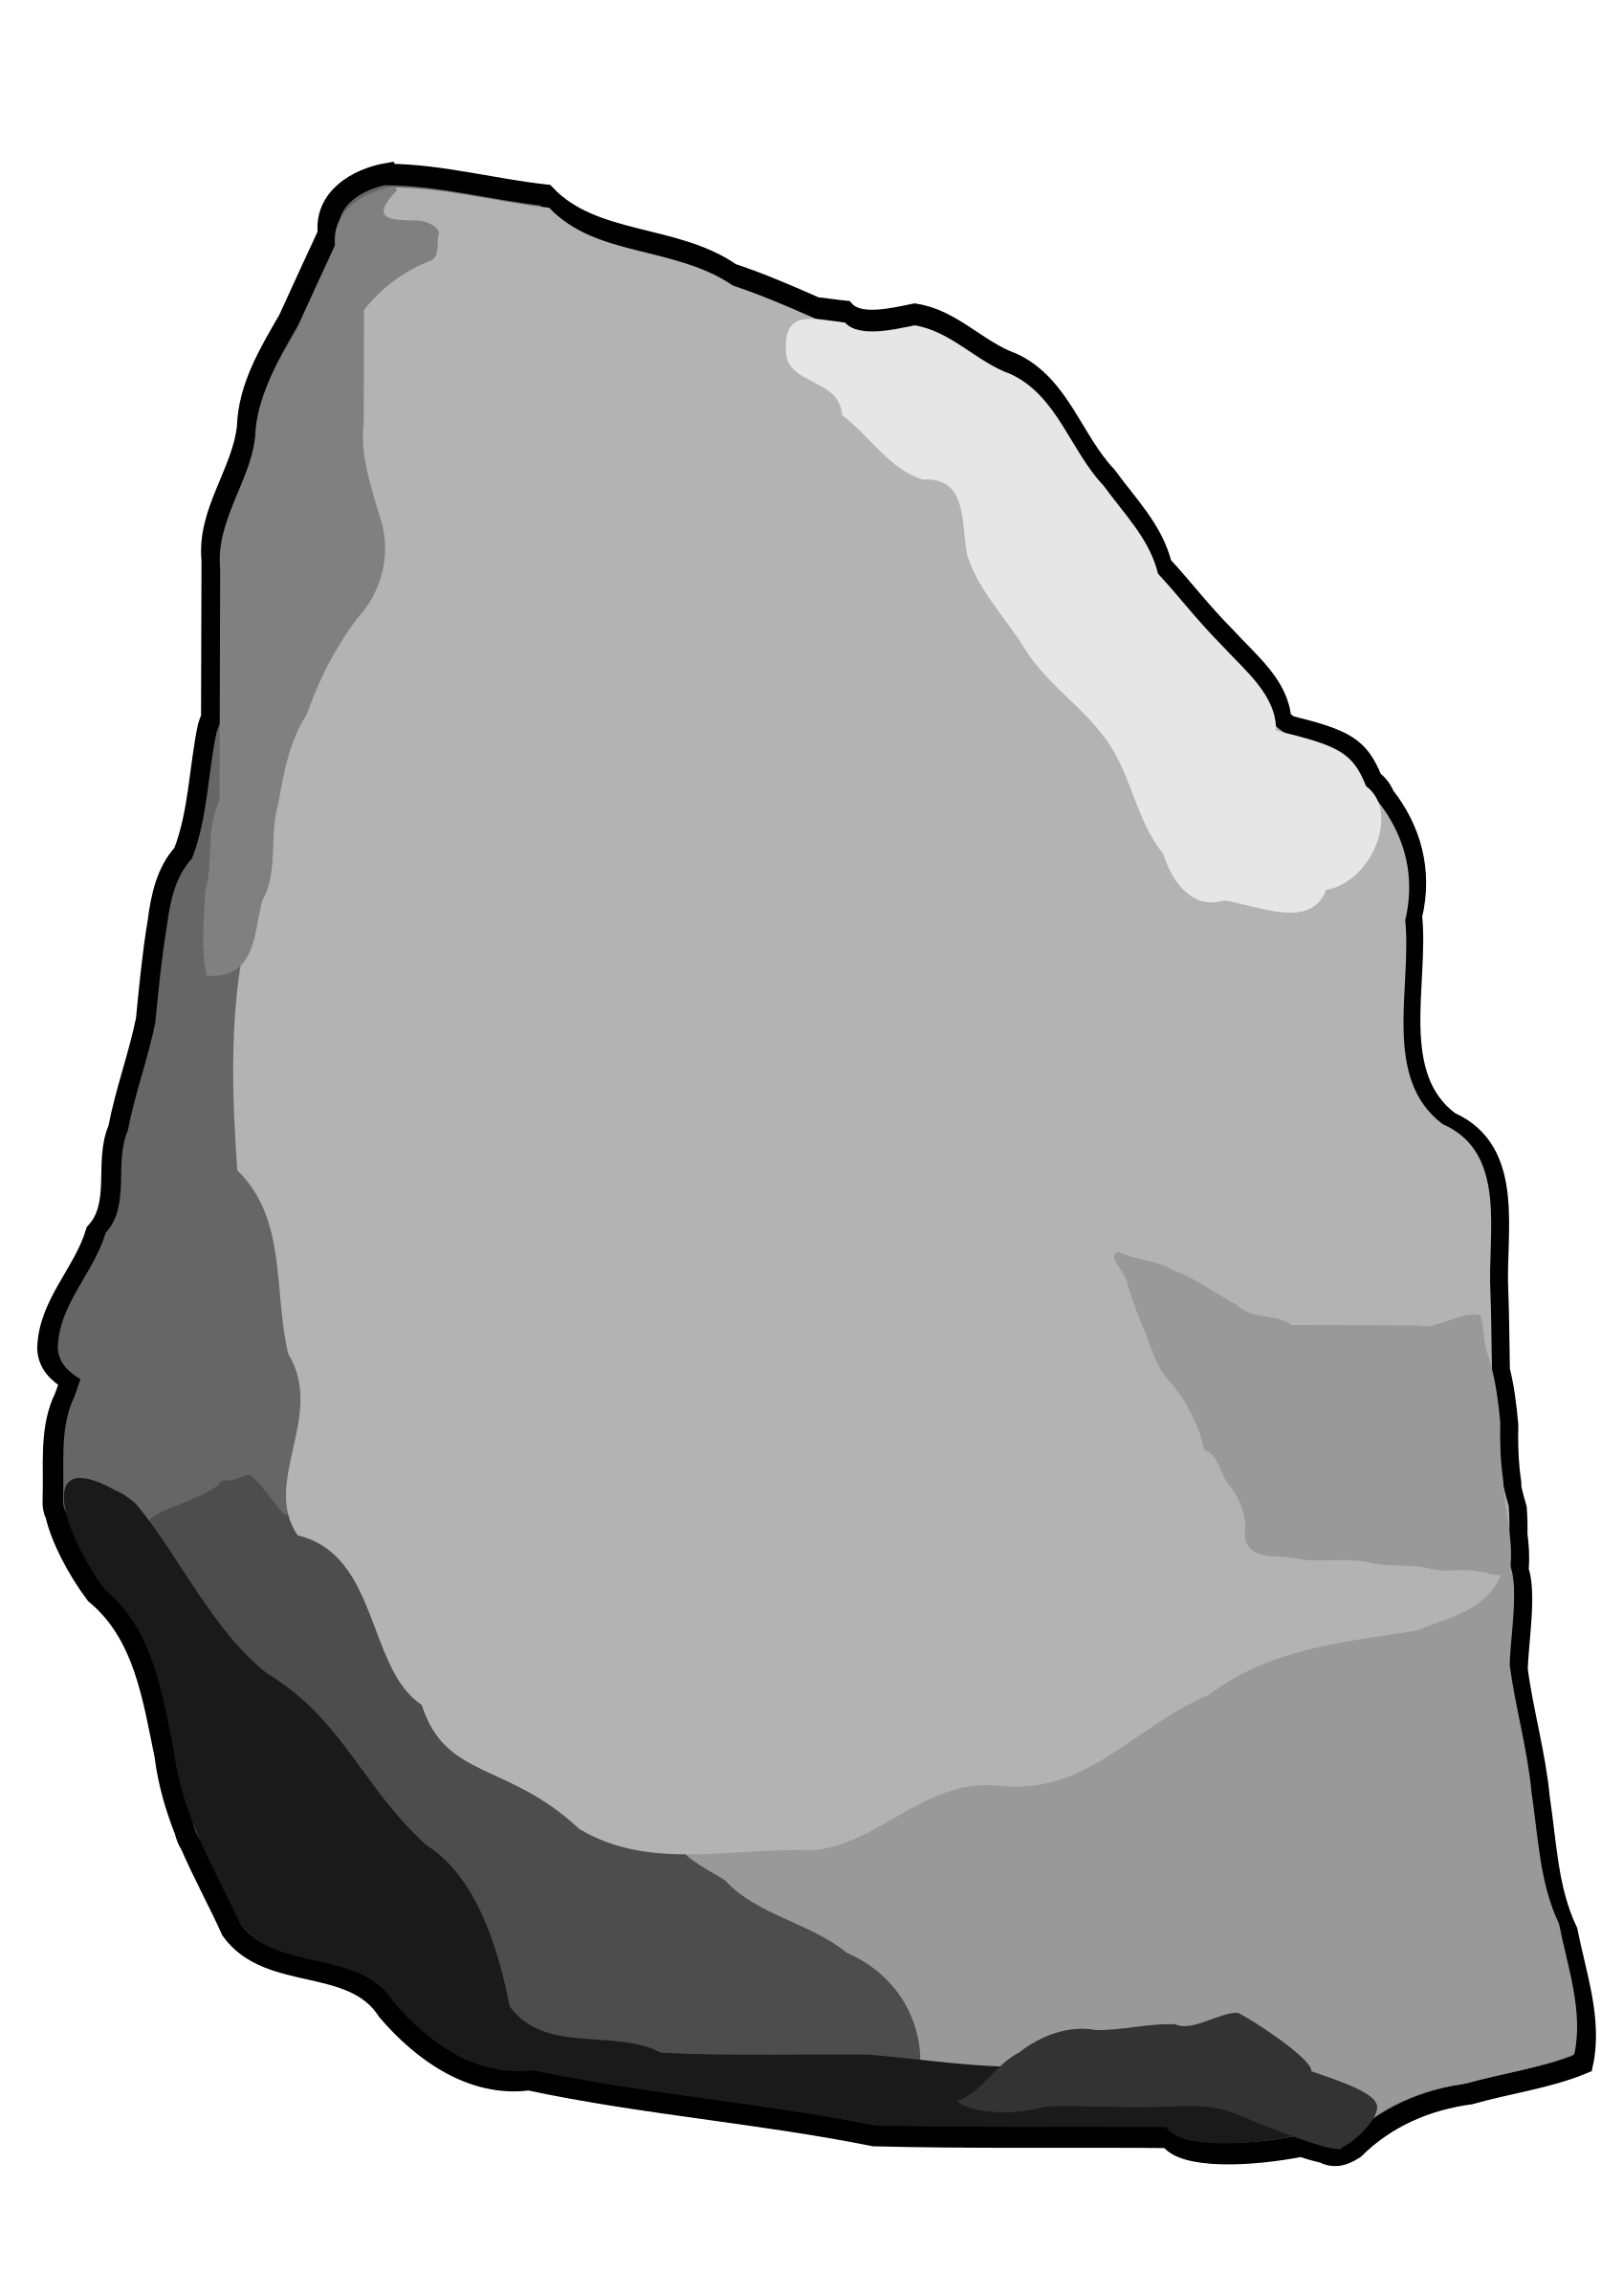 Clipart rock hard stone.  collection of images